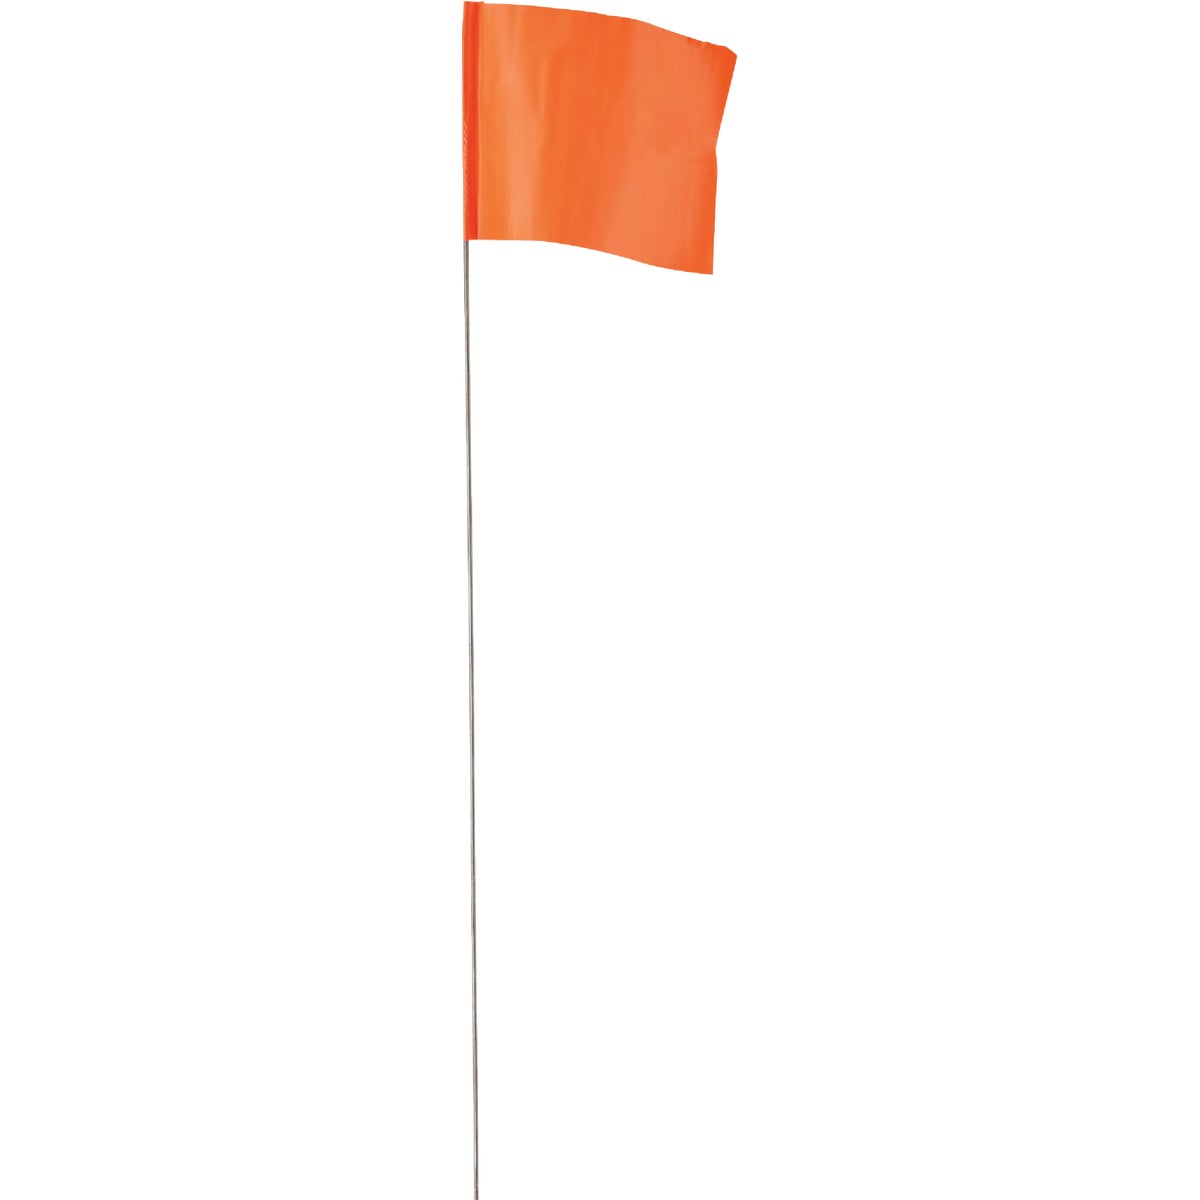 100PK ORANGE FLAGS - 64100 by Irwin Industr Tool